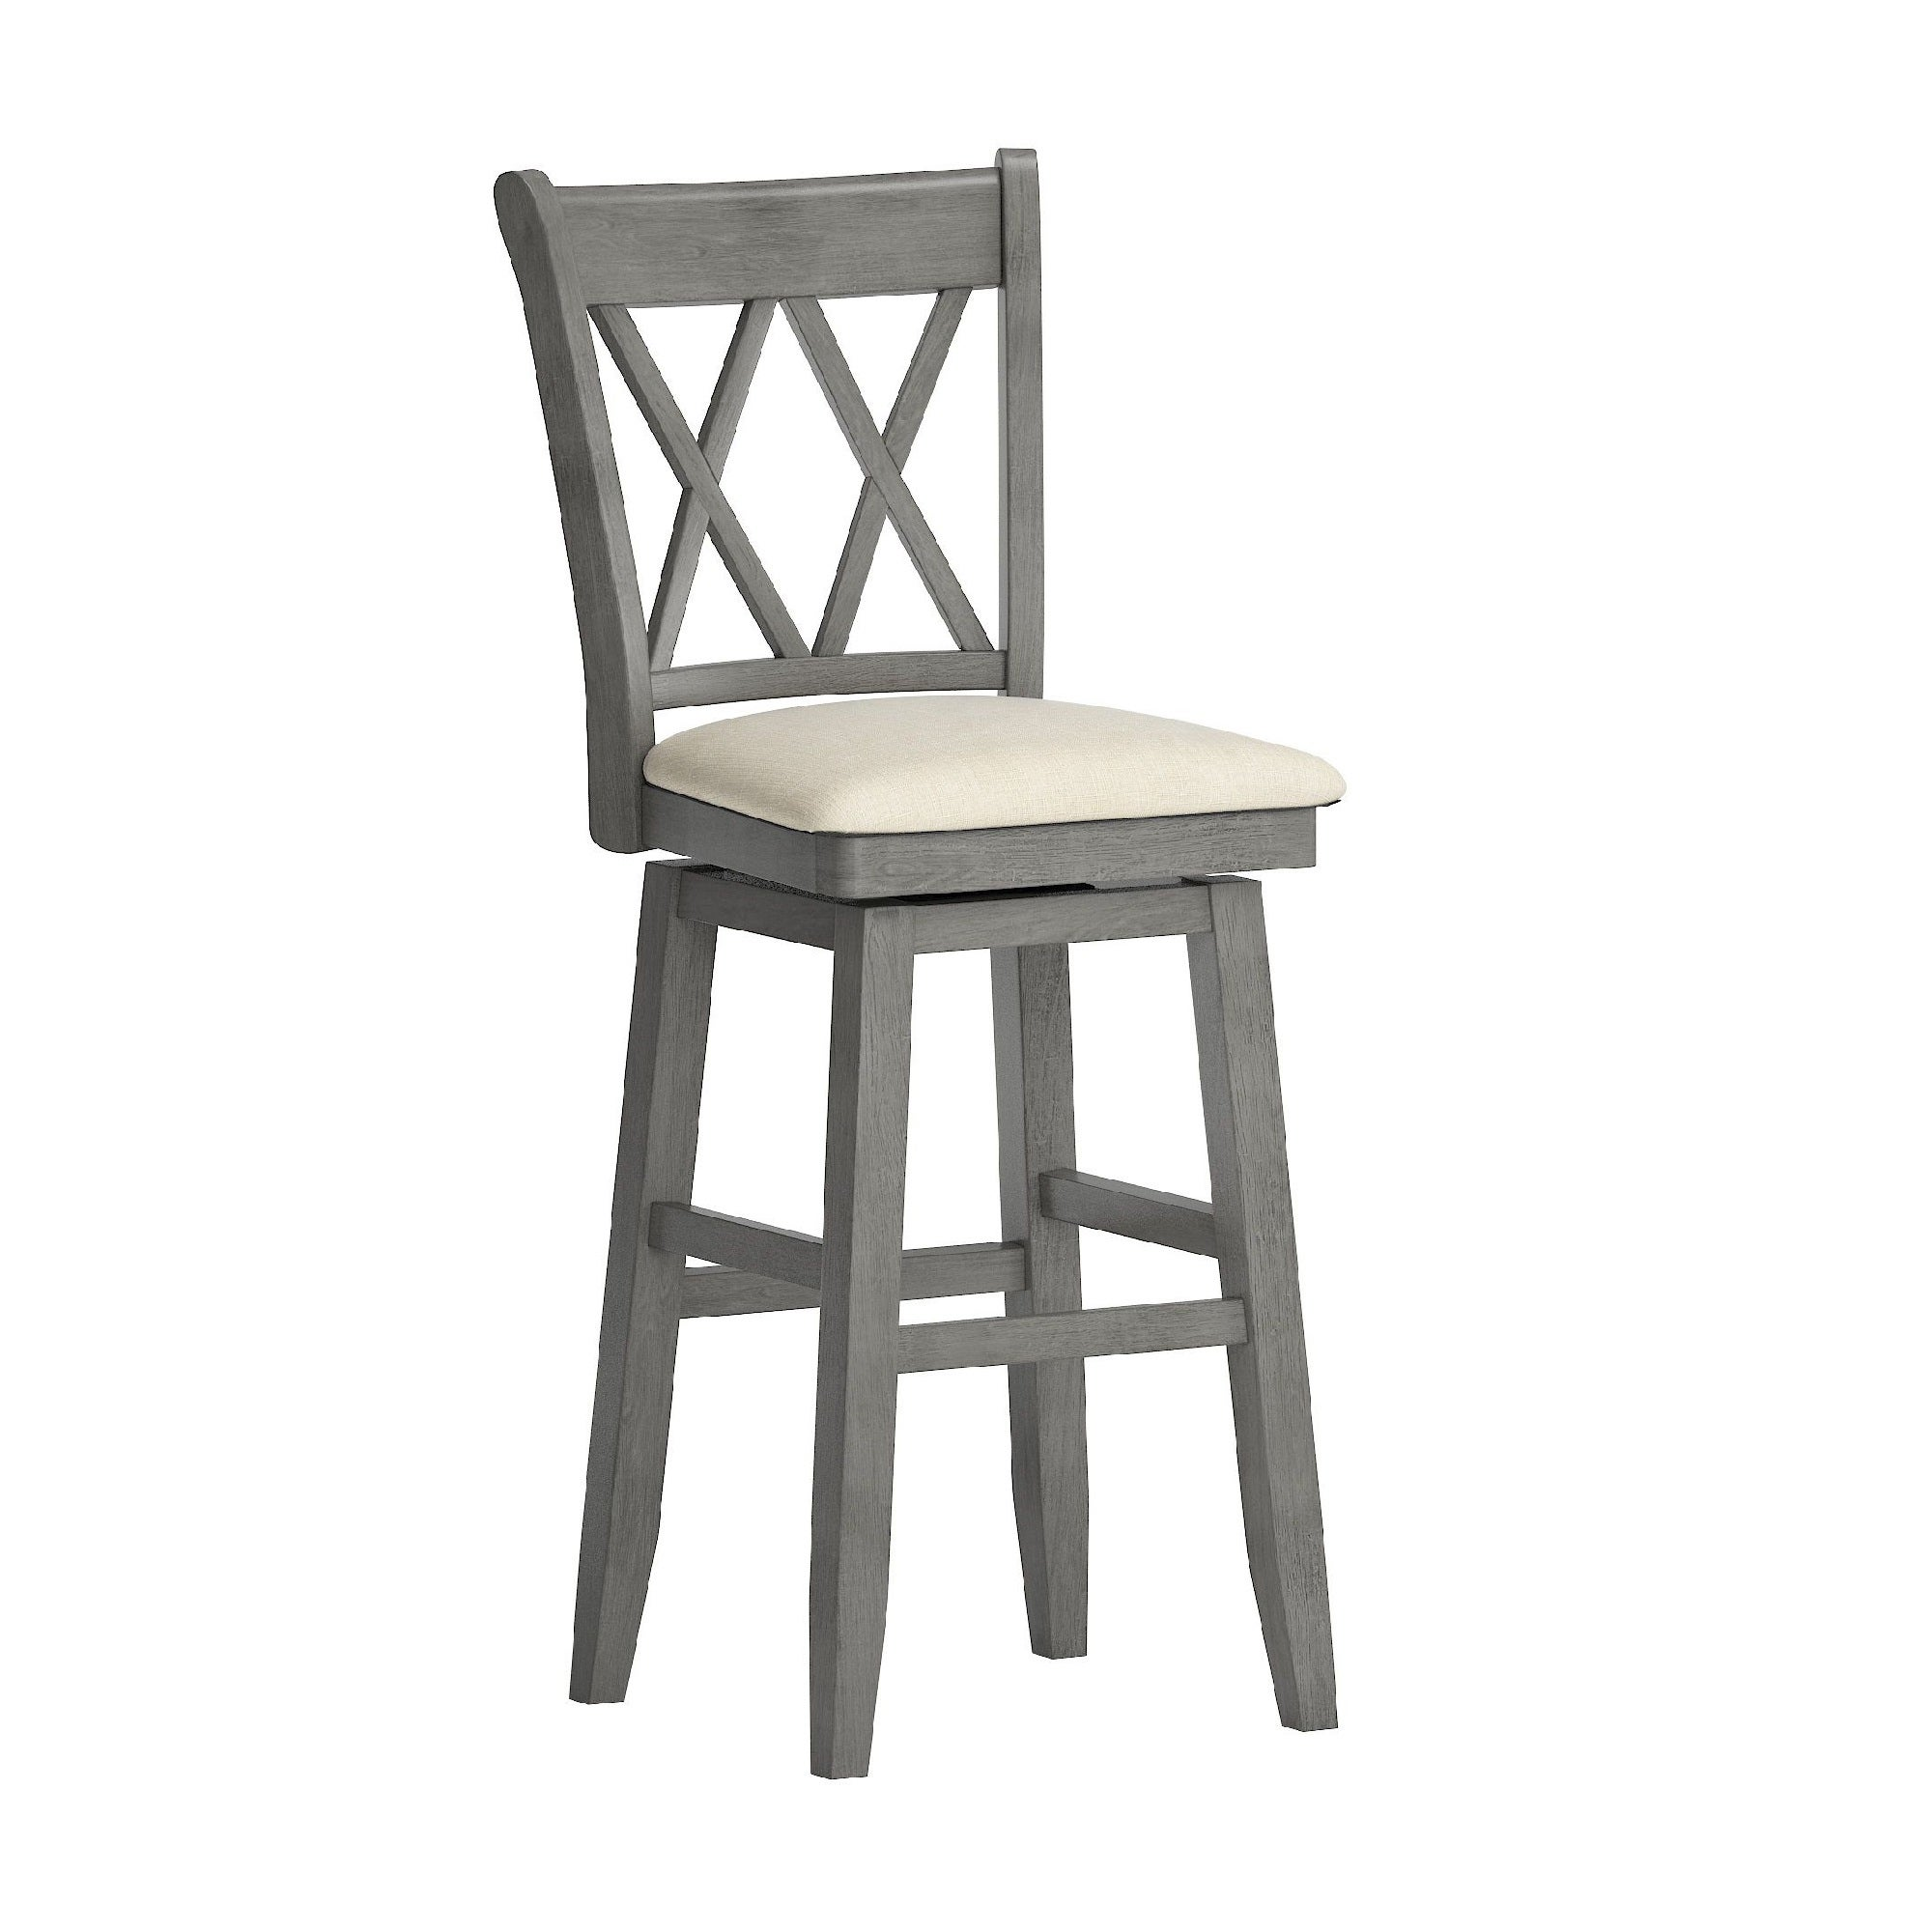 Picture of: Eleanor Double X Back Wood Swivel Bar Stool By Inspire Q Classic On Sale Overstock 20457171